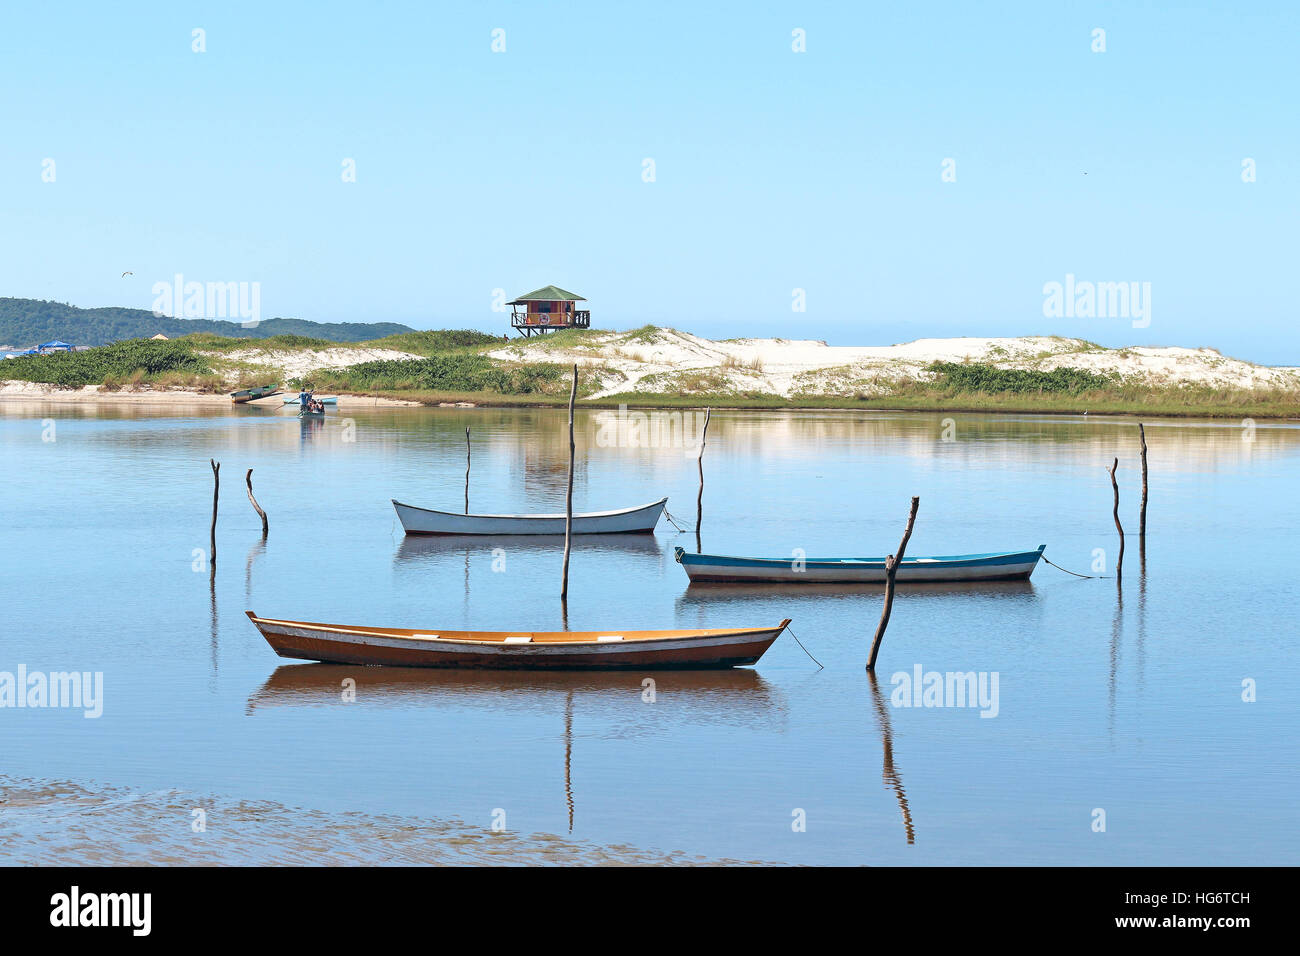 Boats moored on the beach, their reflection shines in the water. Beyond, the guardhouse and the sea! - Stock Image